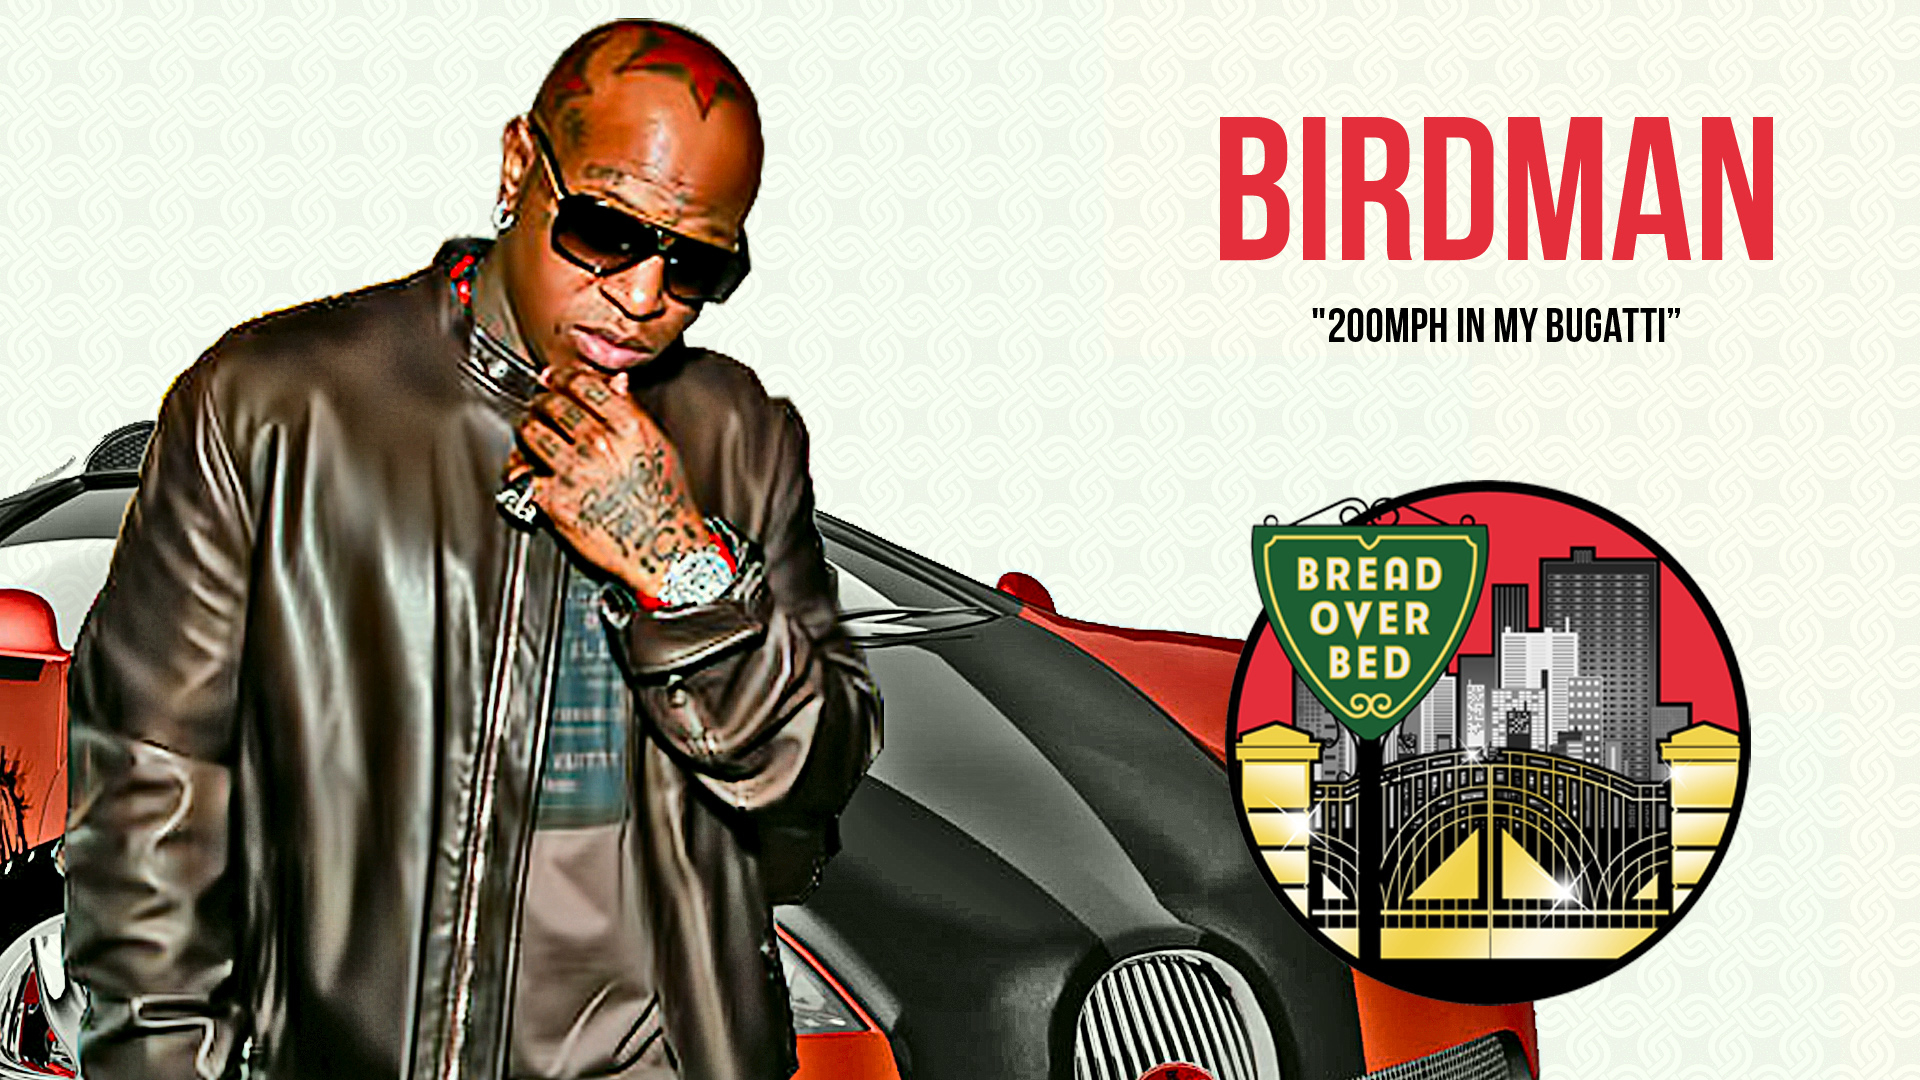 Birdman rapper hd wallpapers birdman rapper wallpapers voltagebd Choice Image